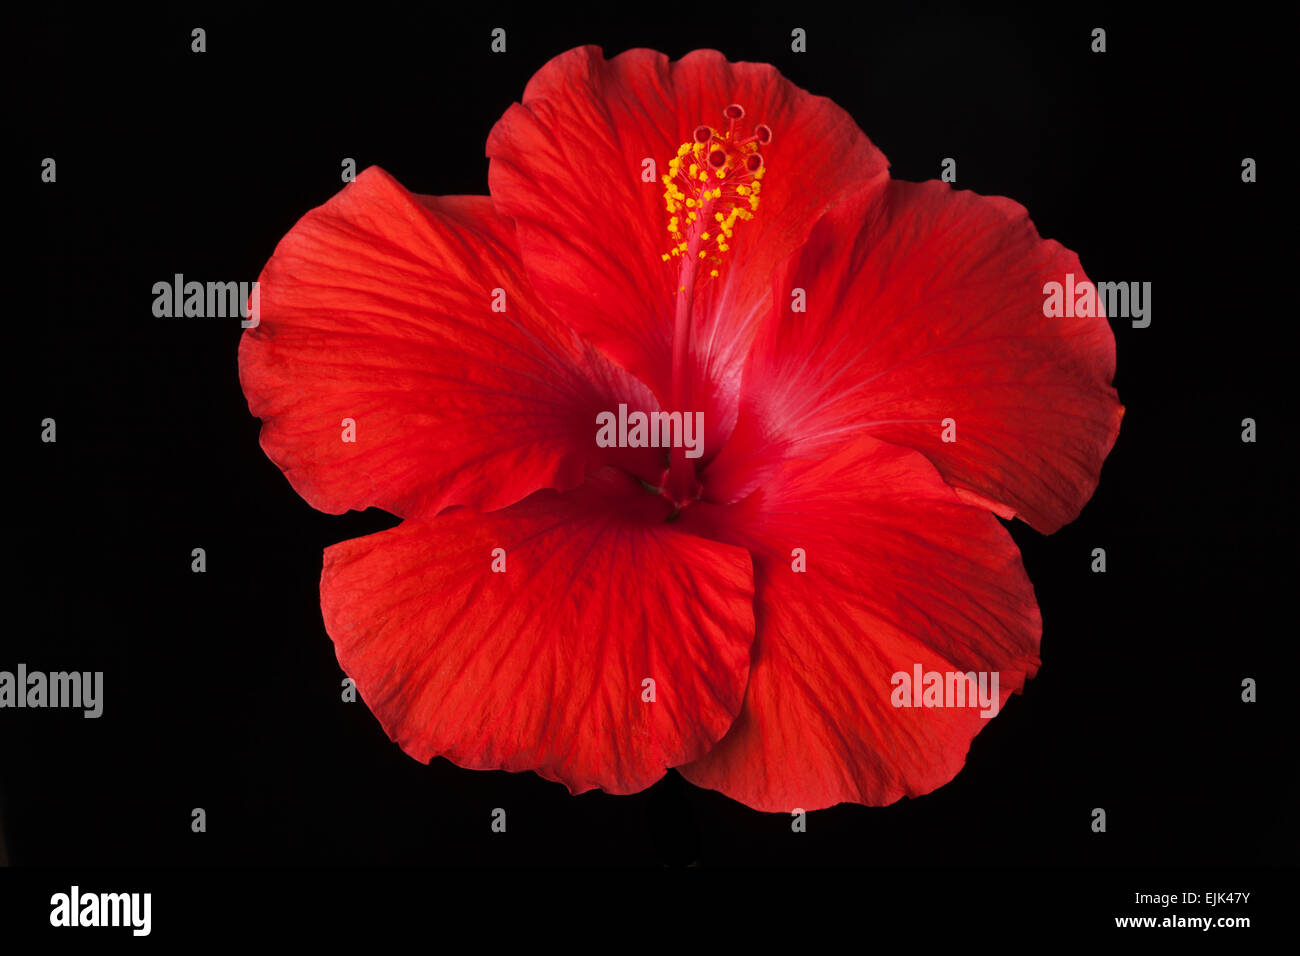 Tropical red hibiscus flower on black background stock photo tropical red hibiscus flower on black background izmirmasajfo